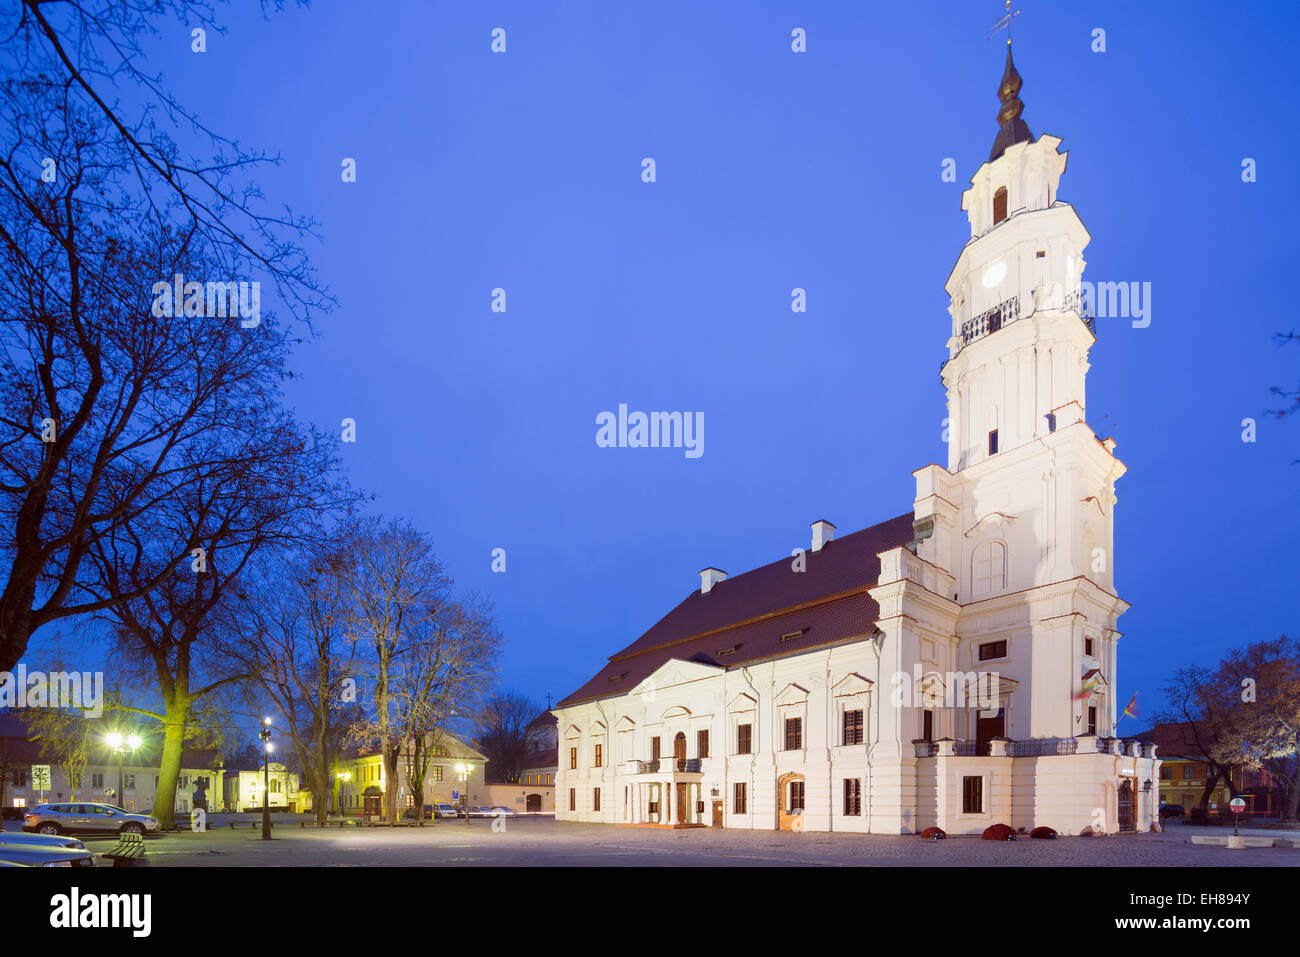 Town Hall of Kaunas, Kaunas, Lithuania, Europe - Stock Image